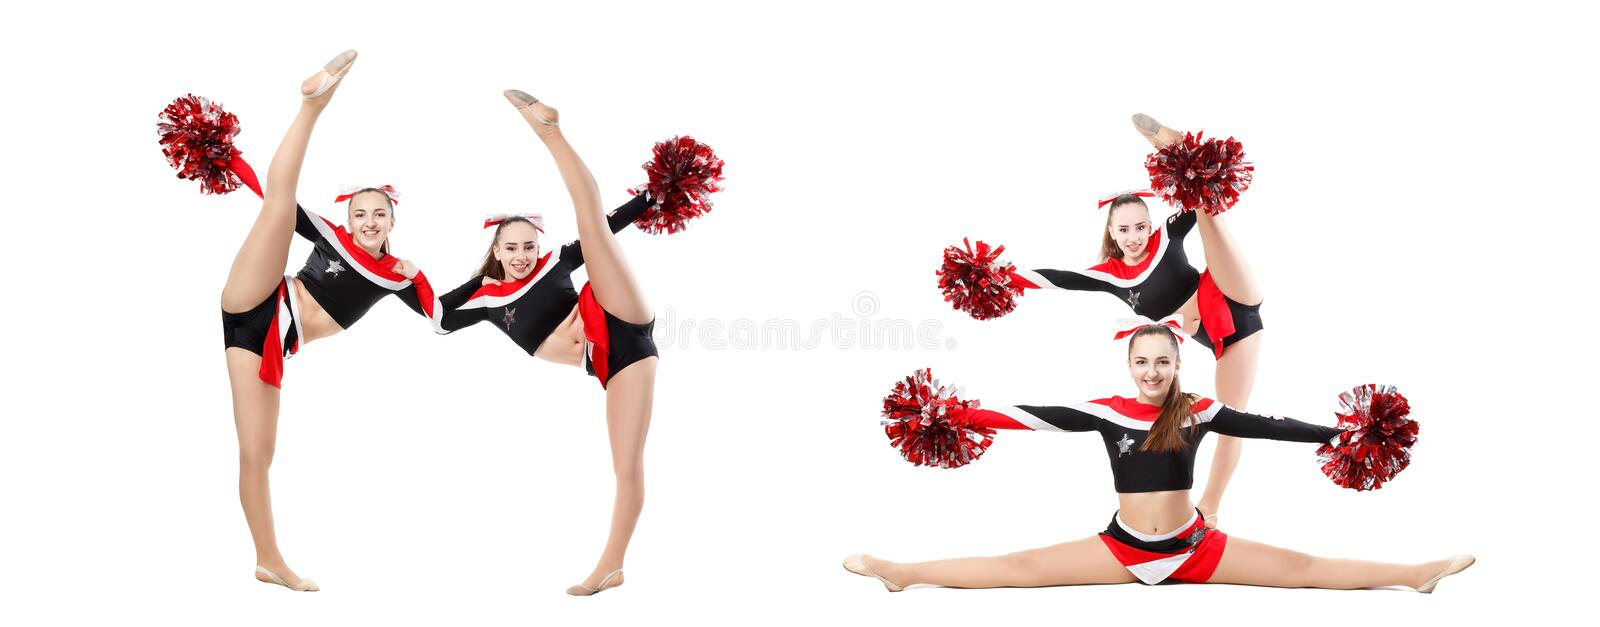 Two professional cheerleaders with pompoms posing at studio, girl doing acrobatic and flexible tricks. Vertical split. Isolated stock photos